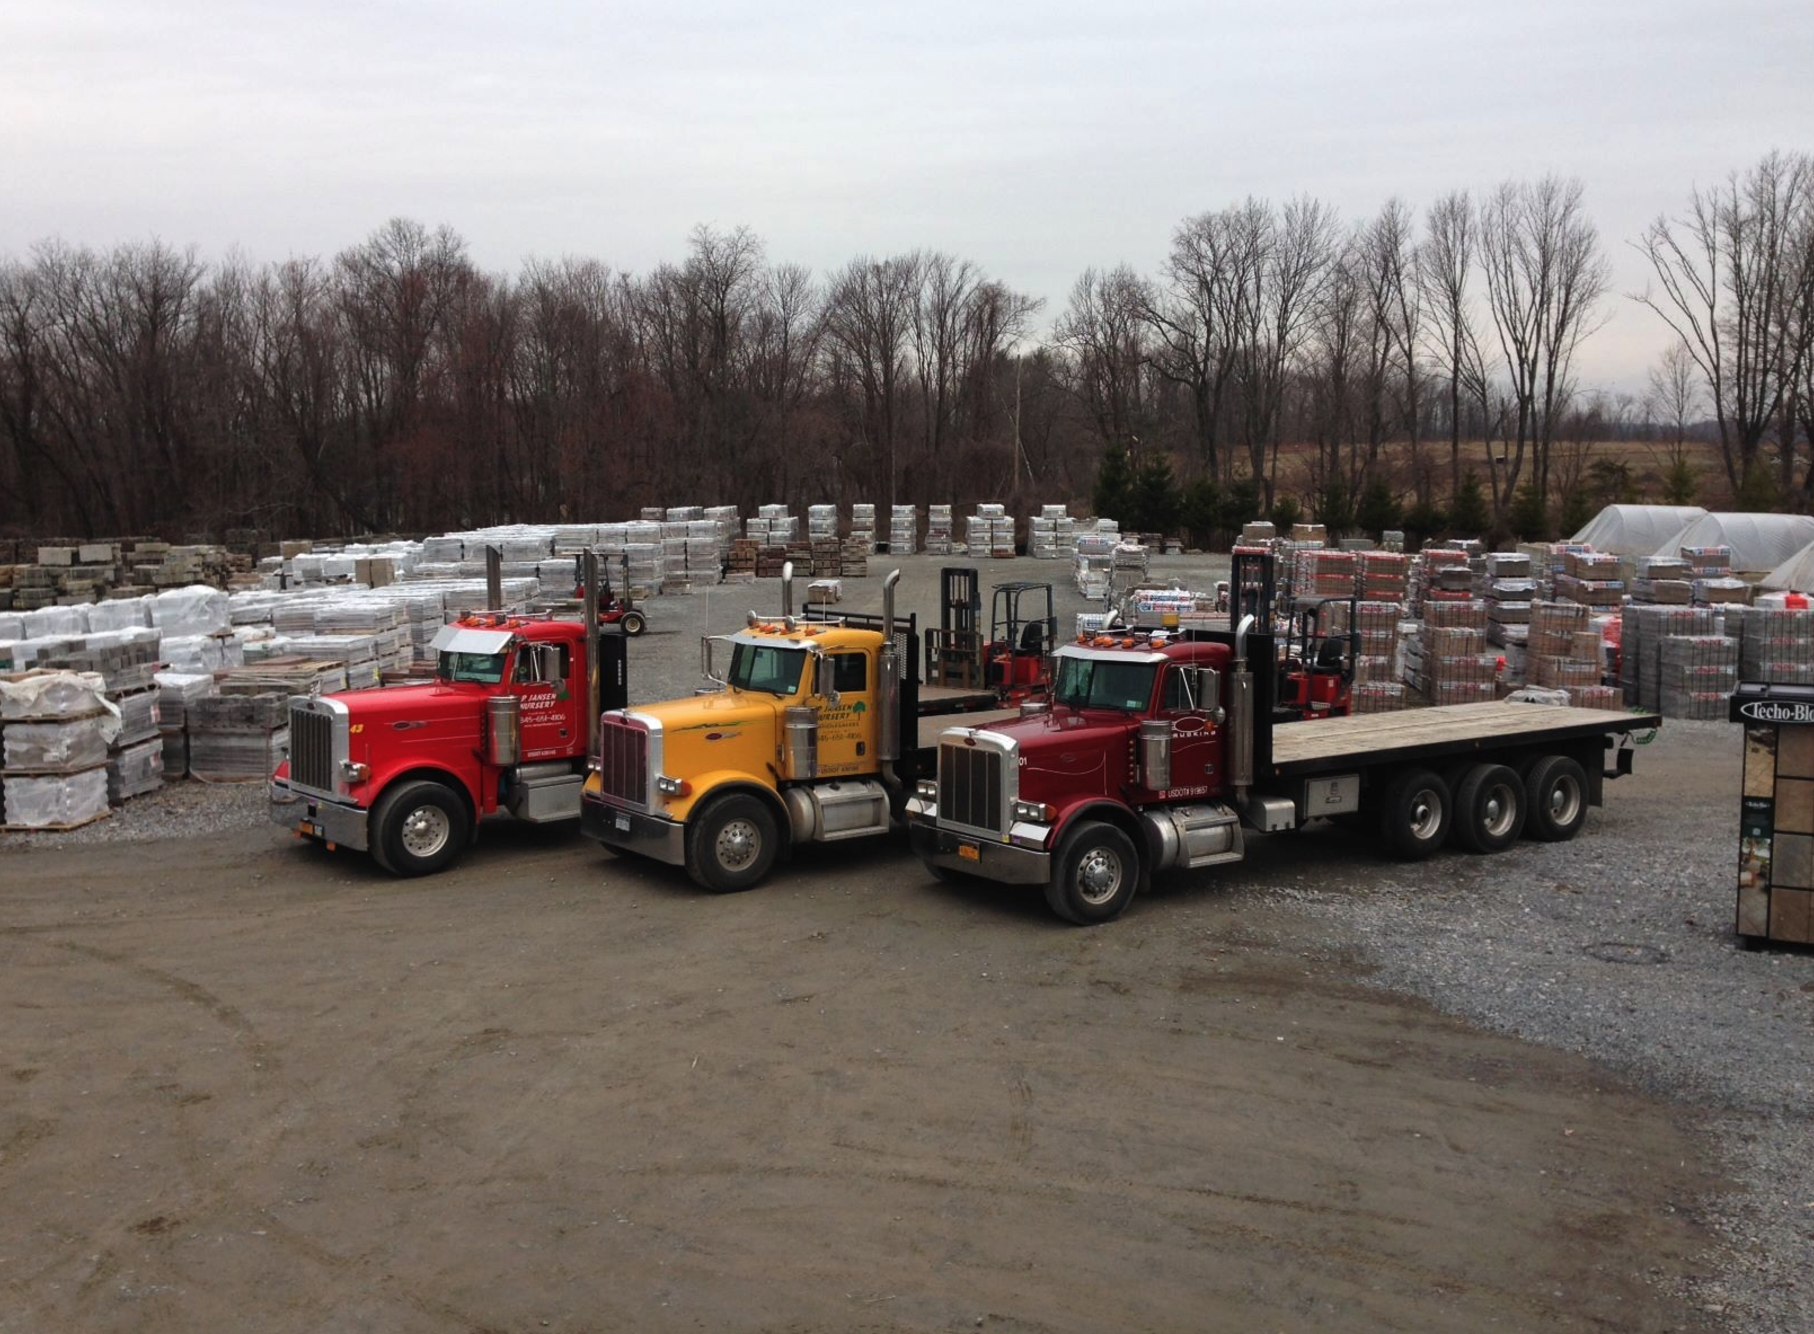 Stoneyard in Orange County, NY - Quality paving stones, stone veneer in Orange County NY